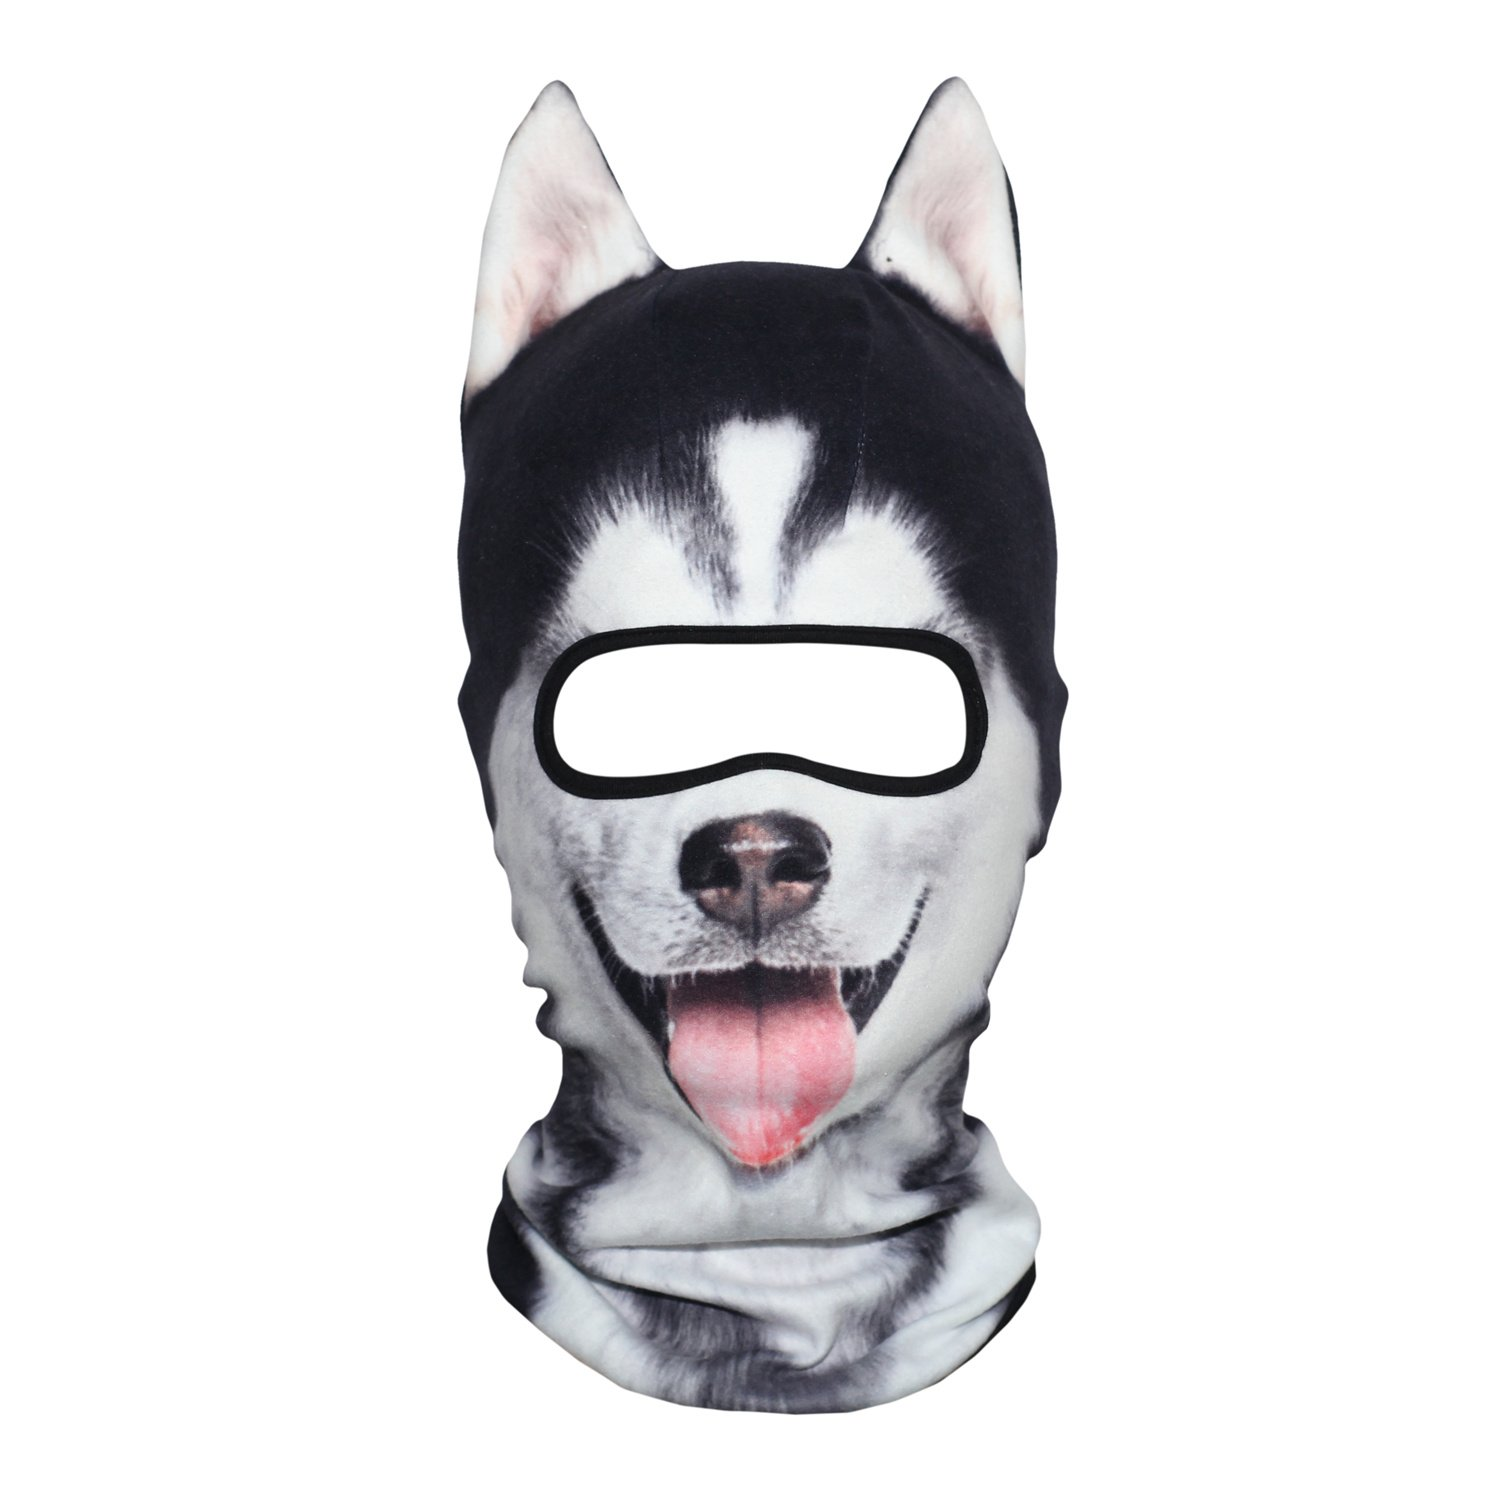 AXBXCX 3D Animal Ears Fleece Thermal Neck Warmer Windproof Hood Cover Face Mask Protection for Ski Snowboard Snowmobile Halloween Winter Cold Weather Siberian Husky MDD-02